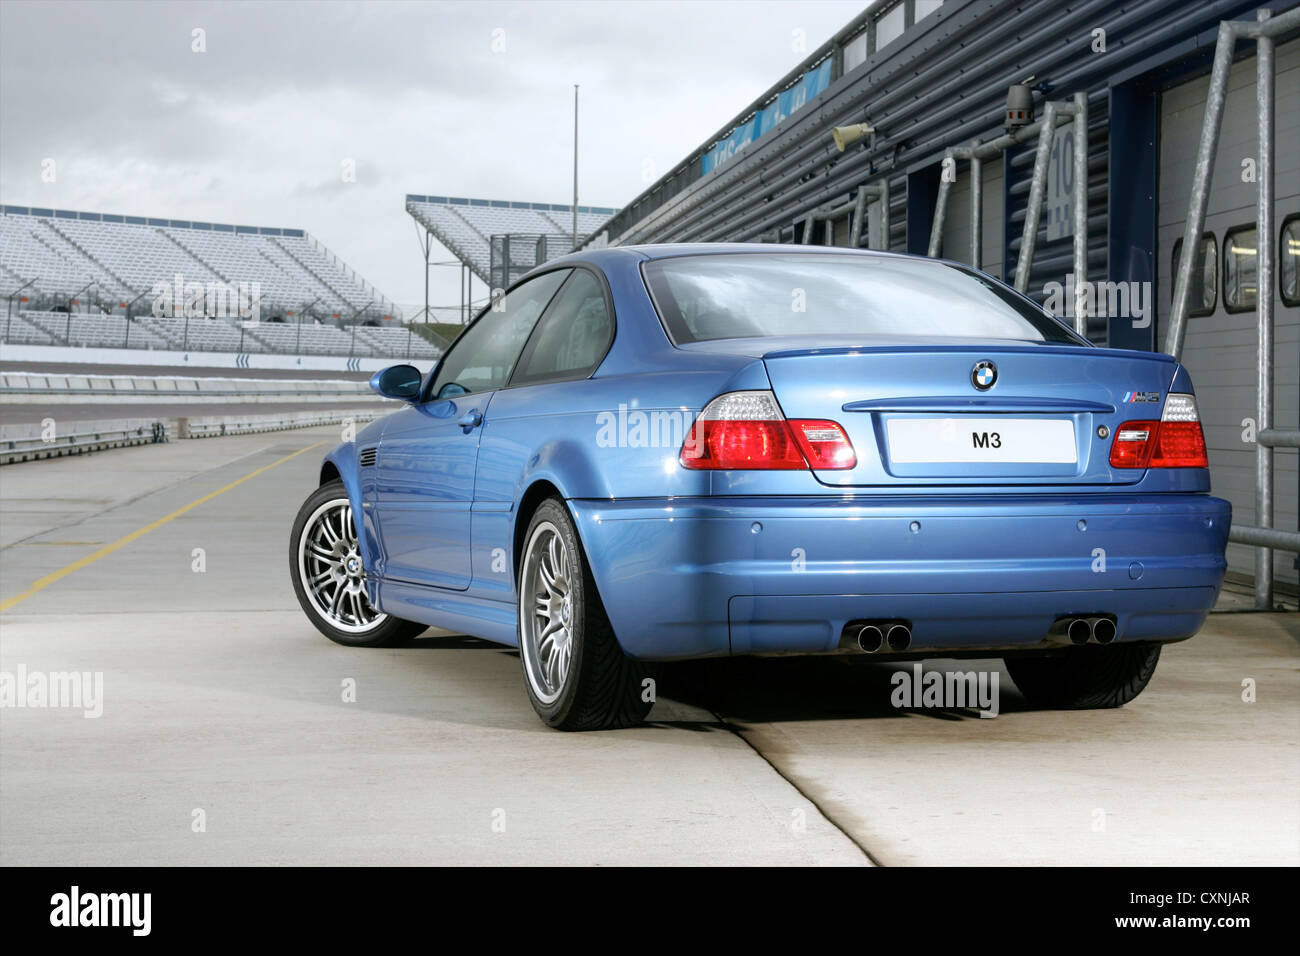 Rear 3/4 BMW M3 Parked In Pit Lane   Stock Image